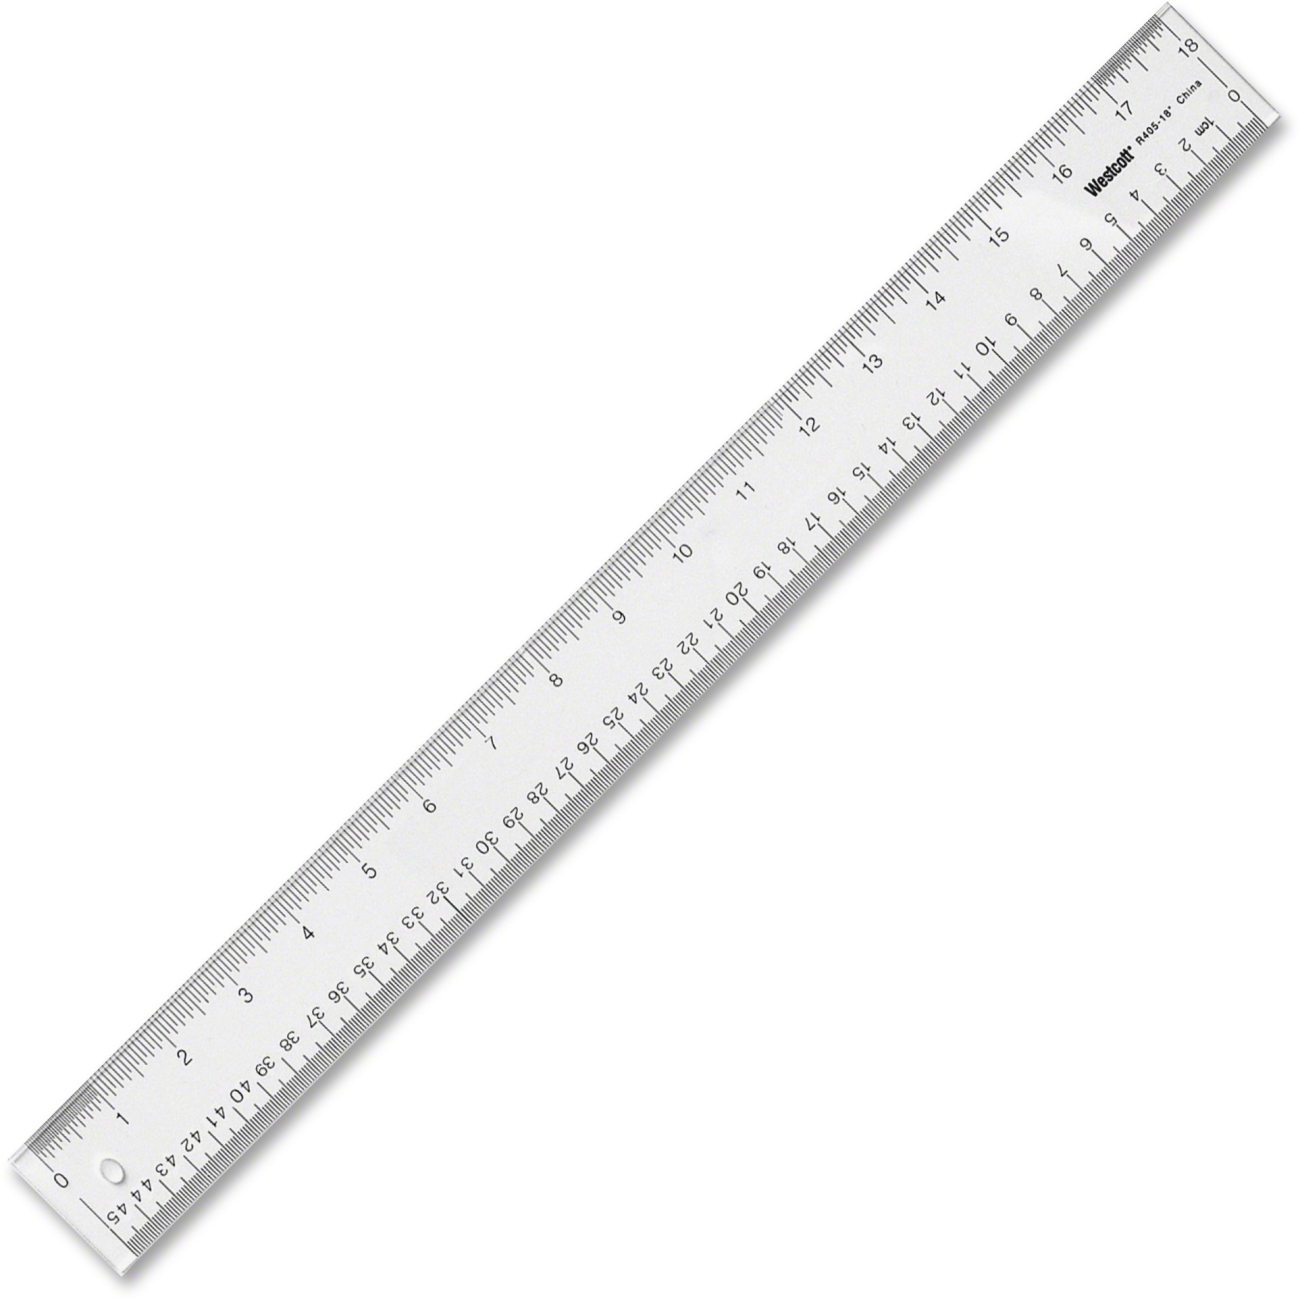 30cm Flexible Clear Plastic 30 Cm Ruler Cm Mm Dm Custom